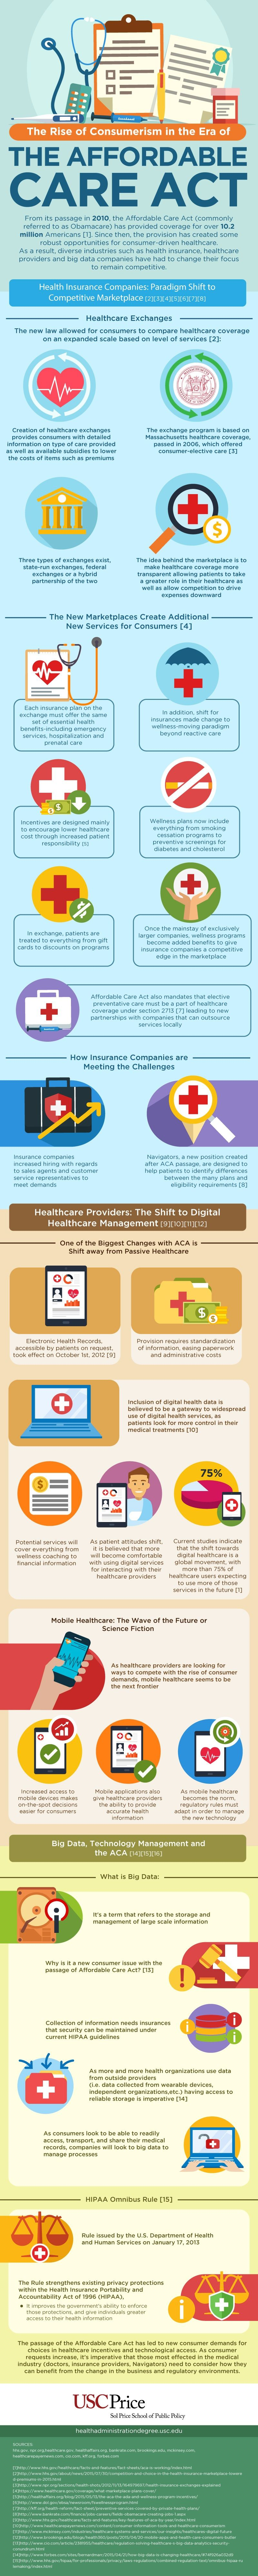 An infographic about consumerism in the age of the Affordable Care Act, and how the trend affects health administrators